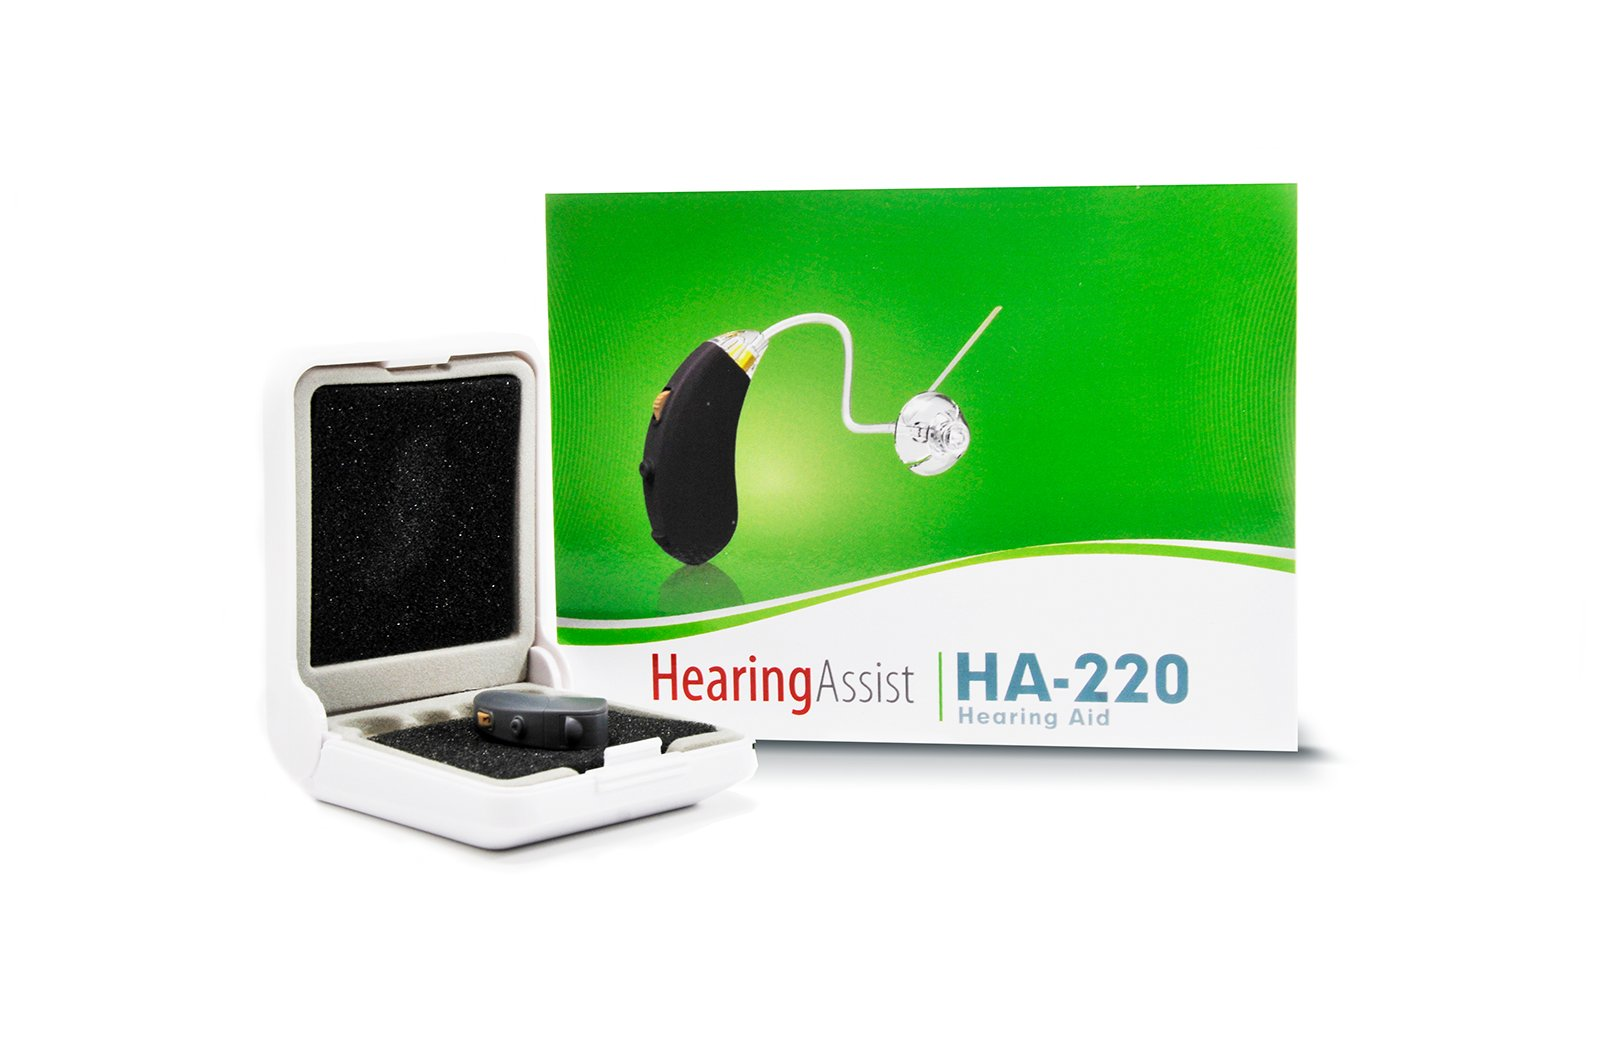 Hearing Assist | Premium Digital Hearing Aid Amplifier | Small and Discreet PSAP | Up To 46db Amplification! | HA-220 by Hearing Assist (Image #5)